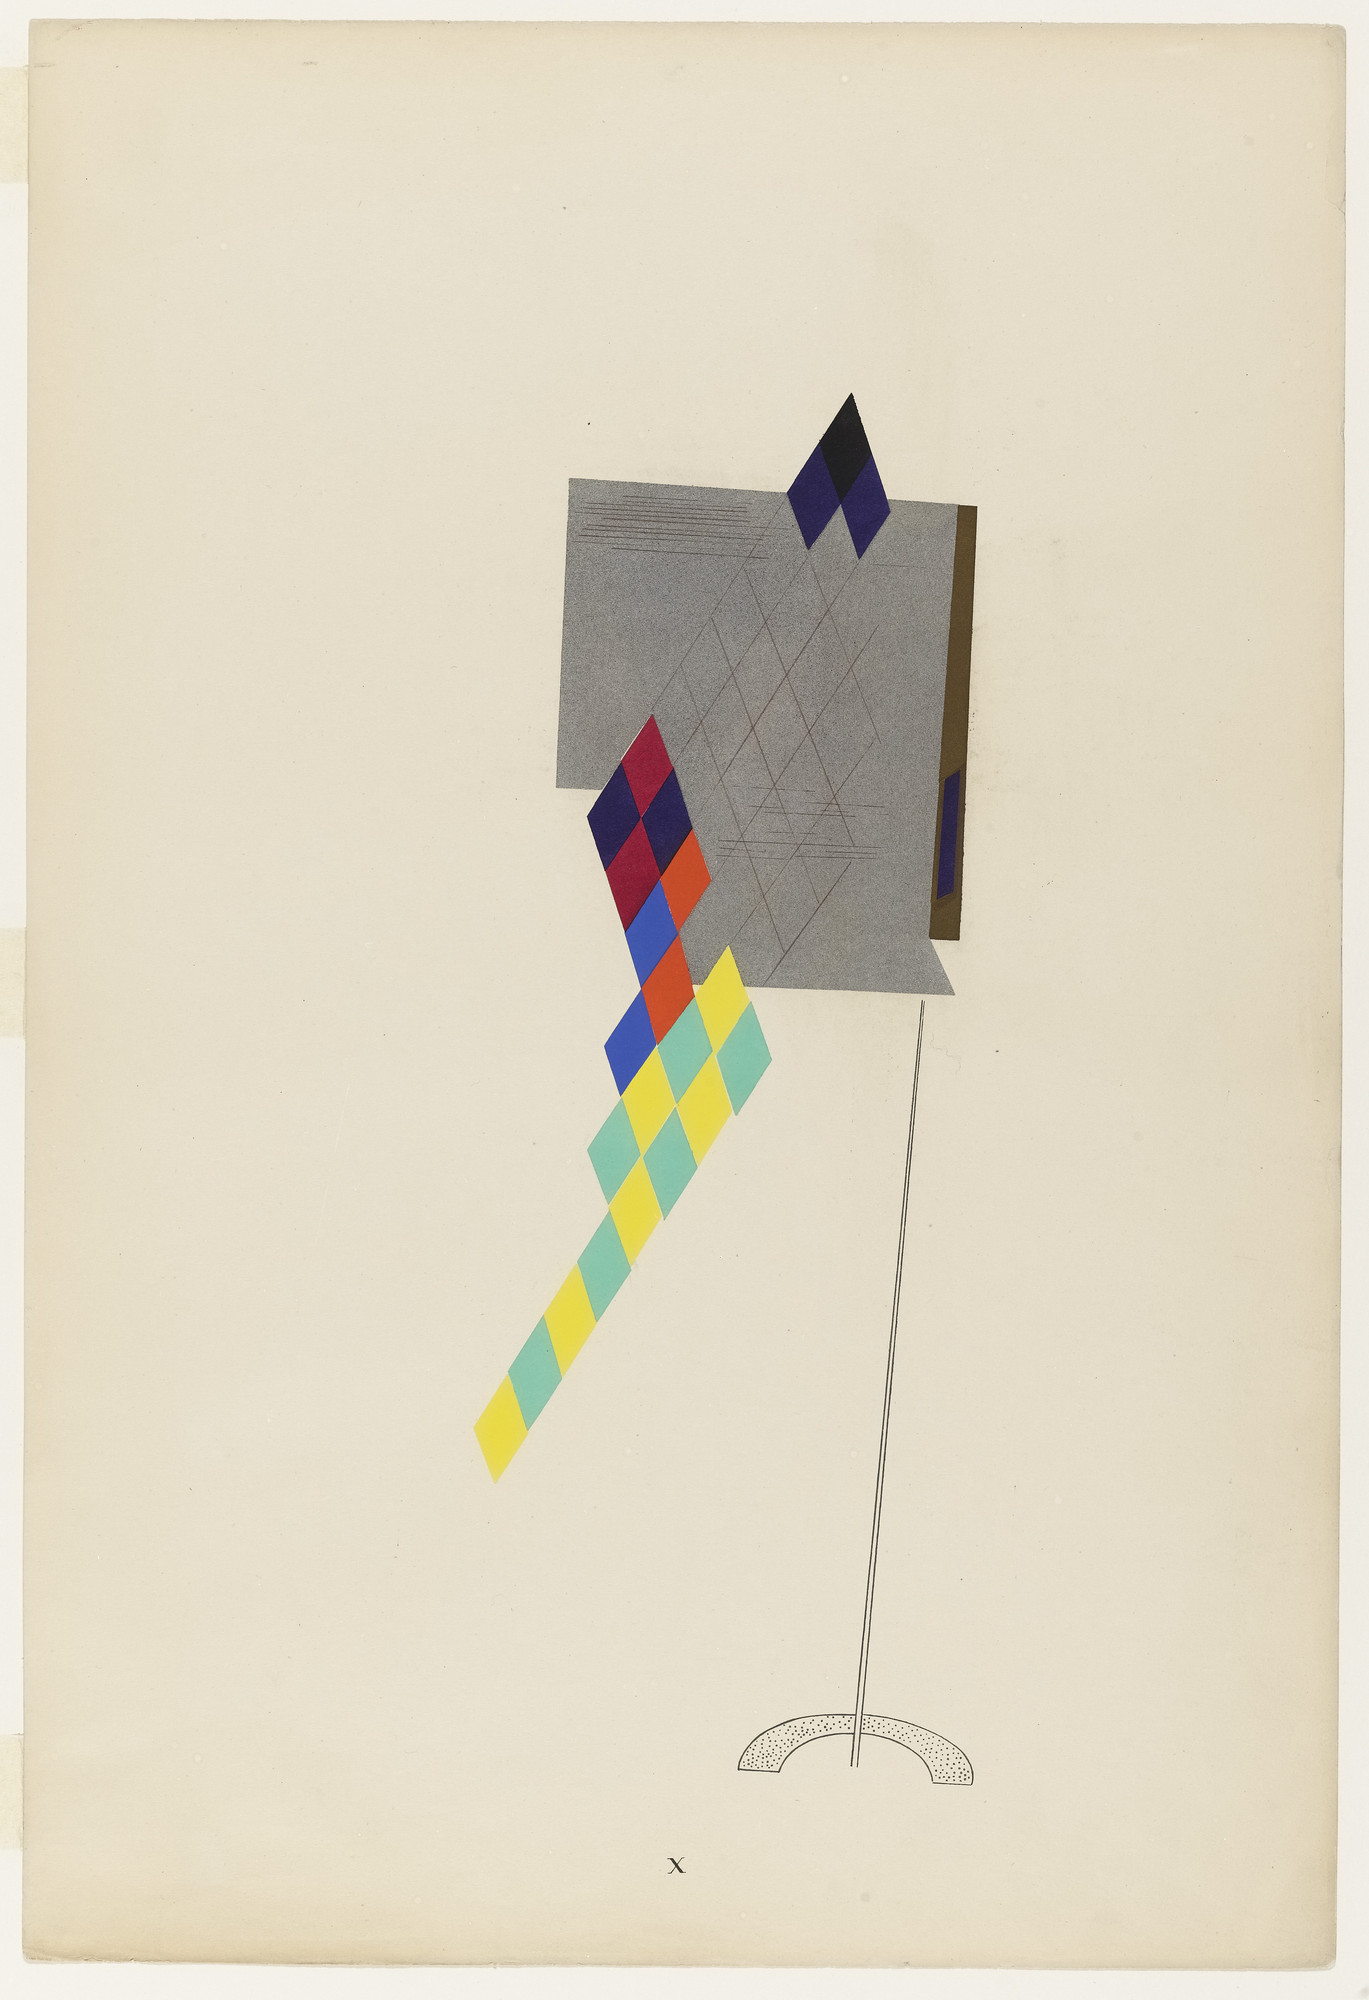 Man Ray (Emmanuel Radnitzky). Dragonfly from Revolving Doors. 1926